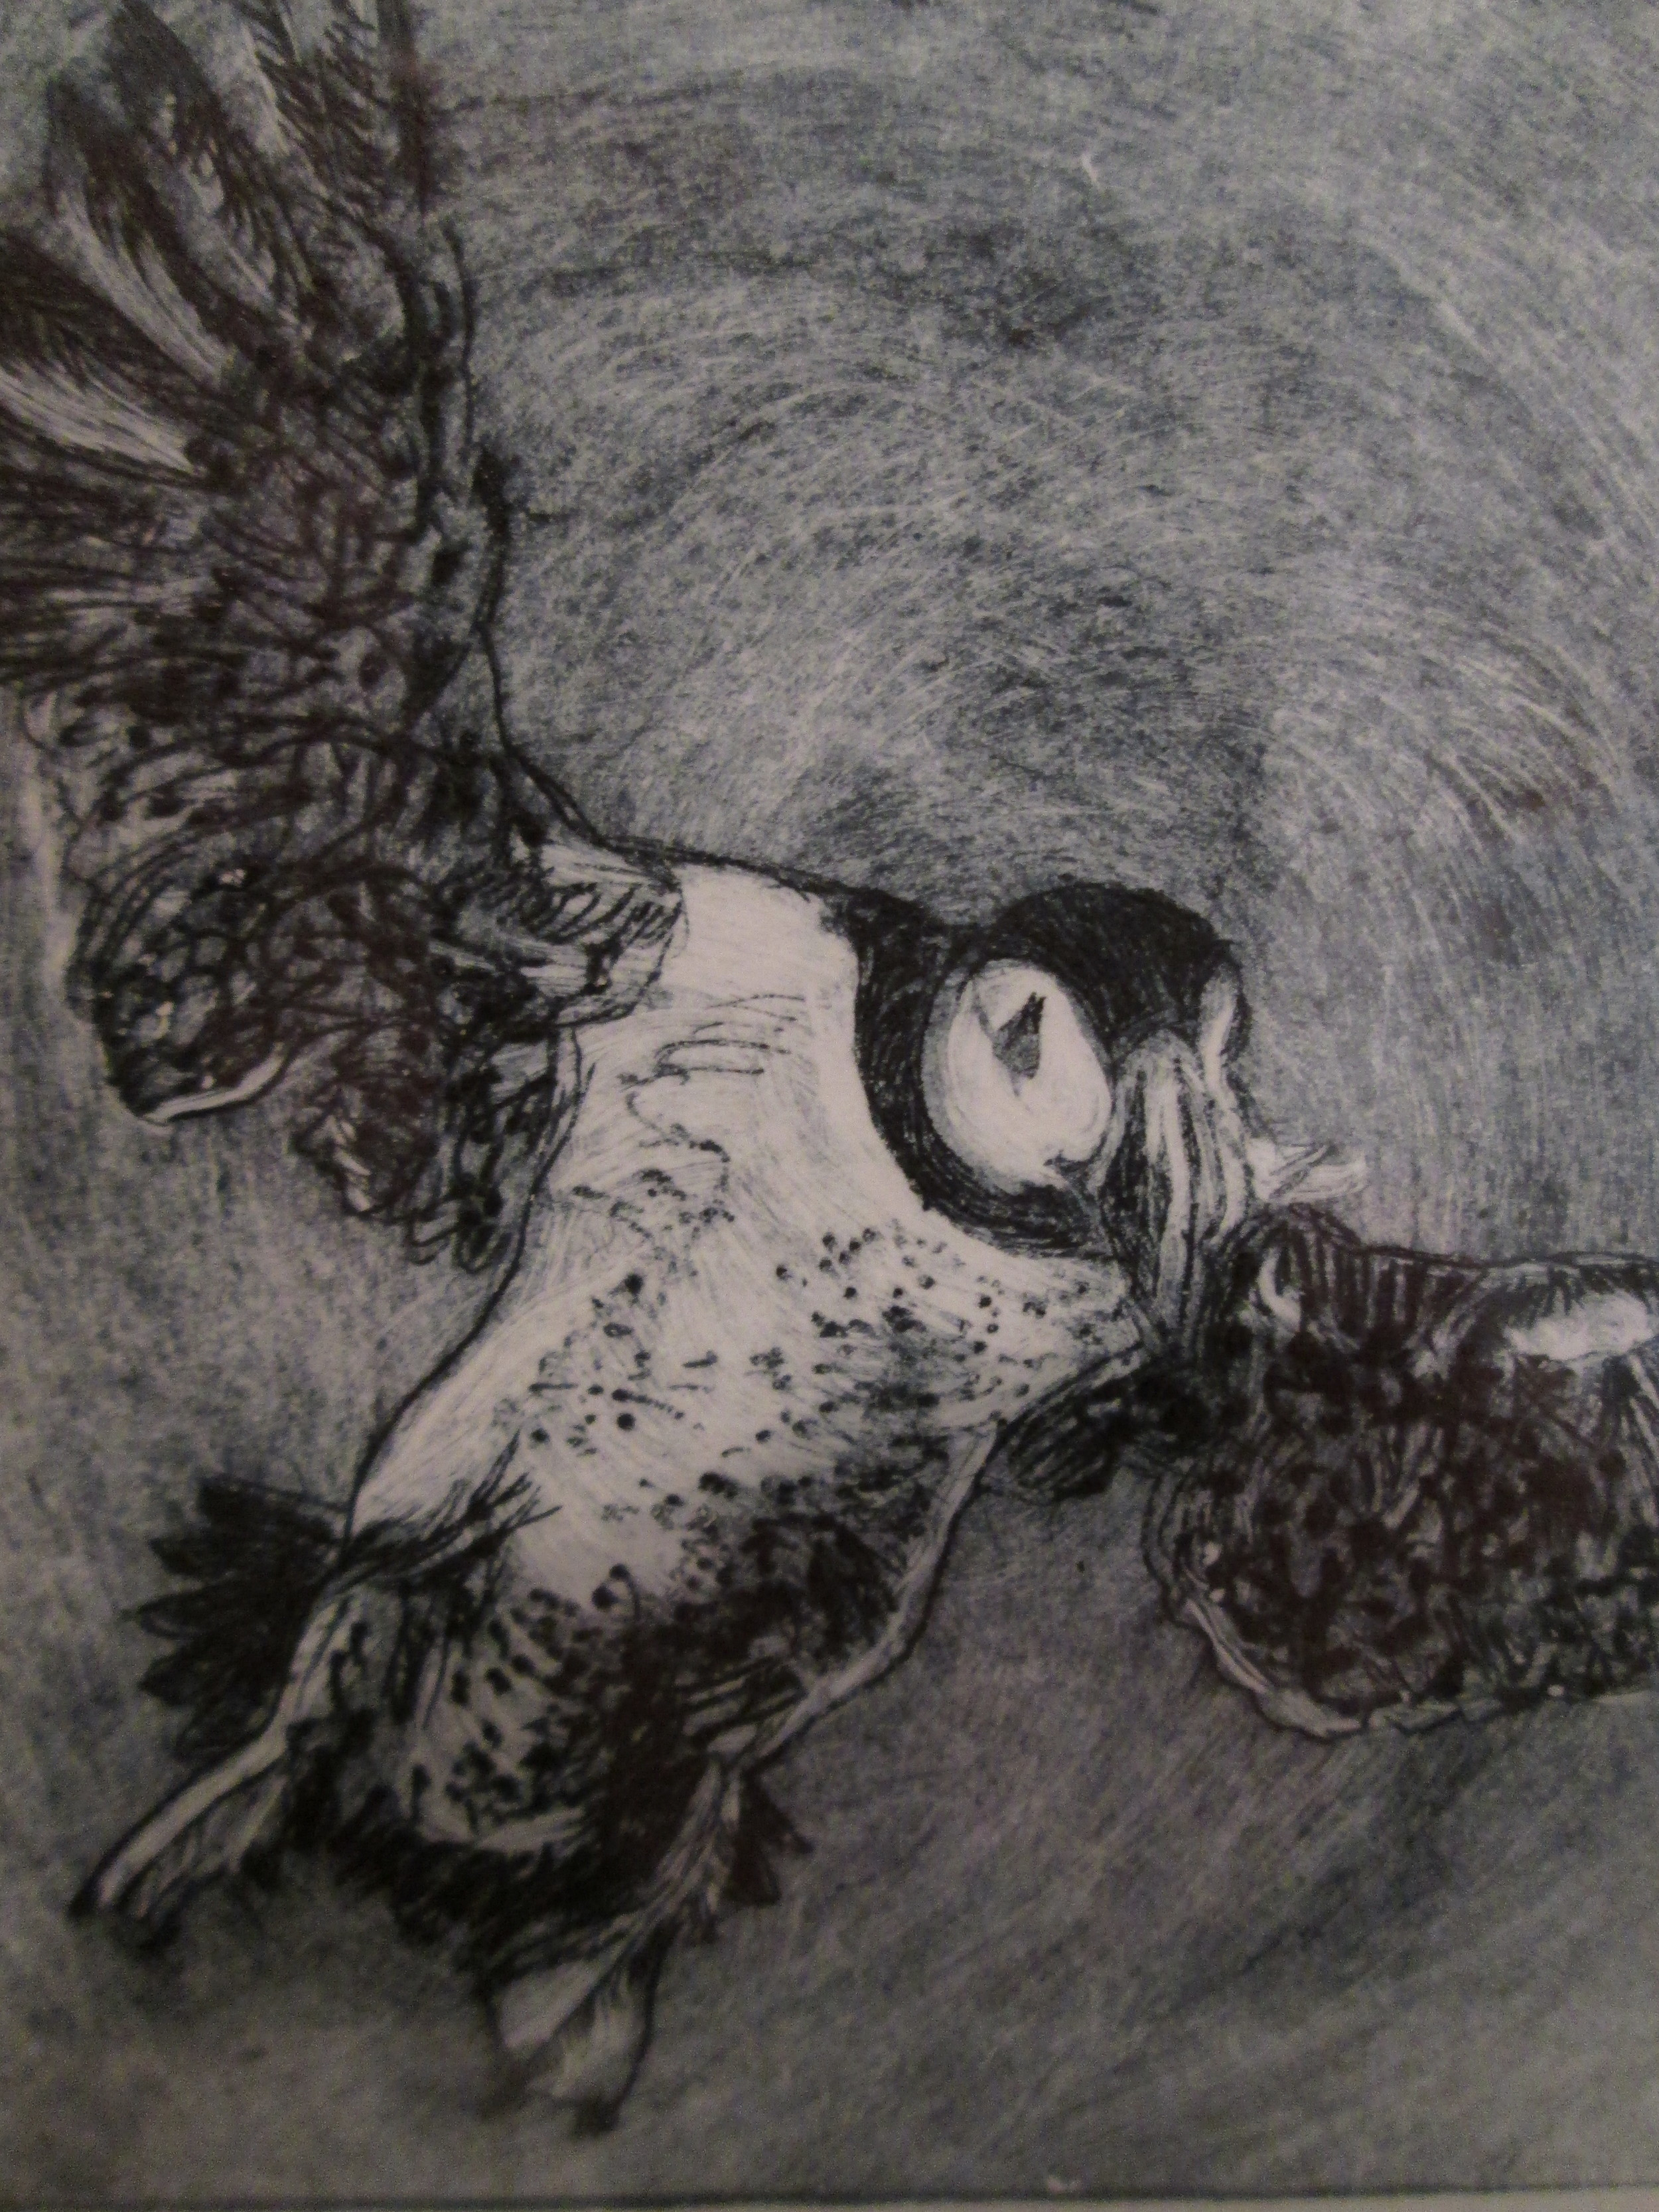 Louise Worthy 'in coming Puffin'  - 1 of 5 -  Original drypoint engraving - Framed £70.